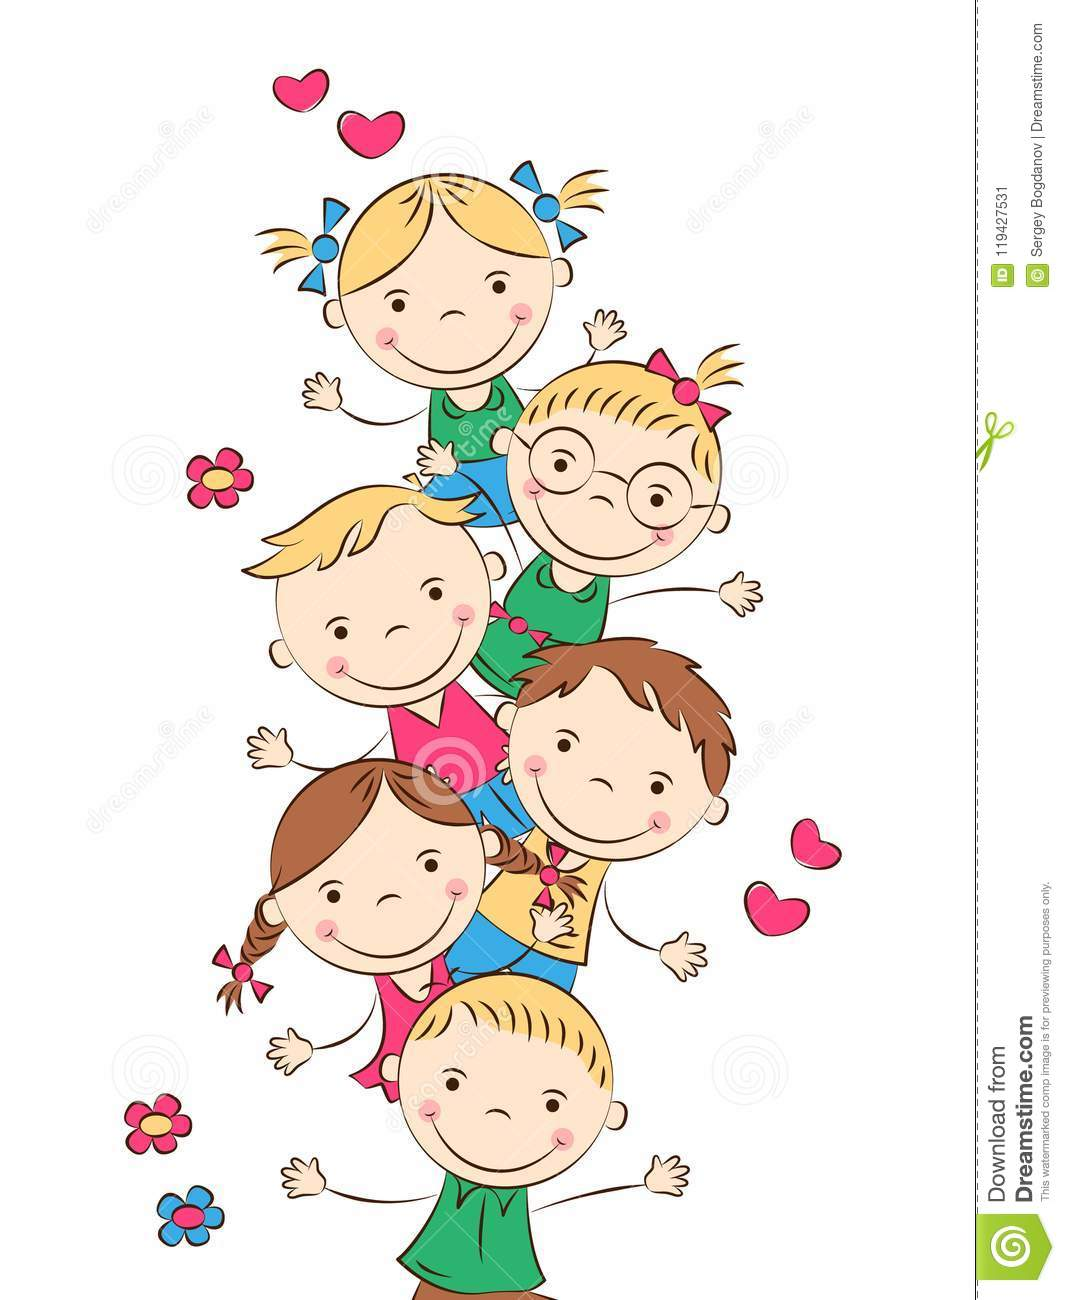 Funny Cartoon Images Of Boys funny cartoon kids stock vector. illustration of isolated